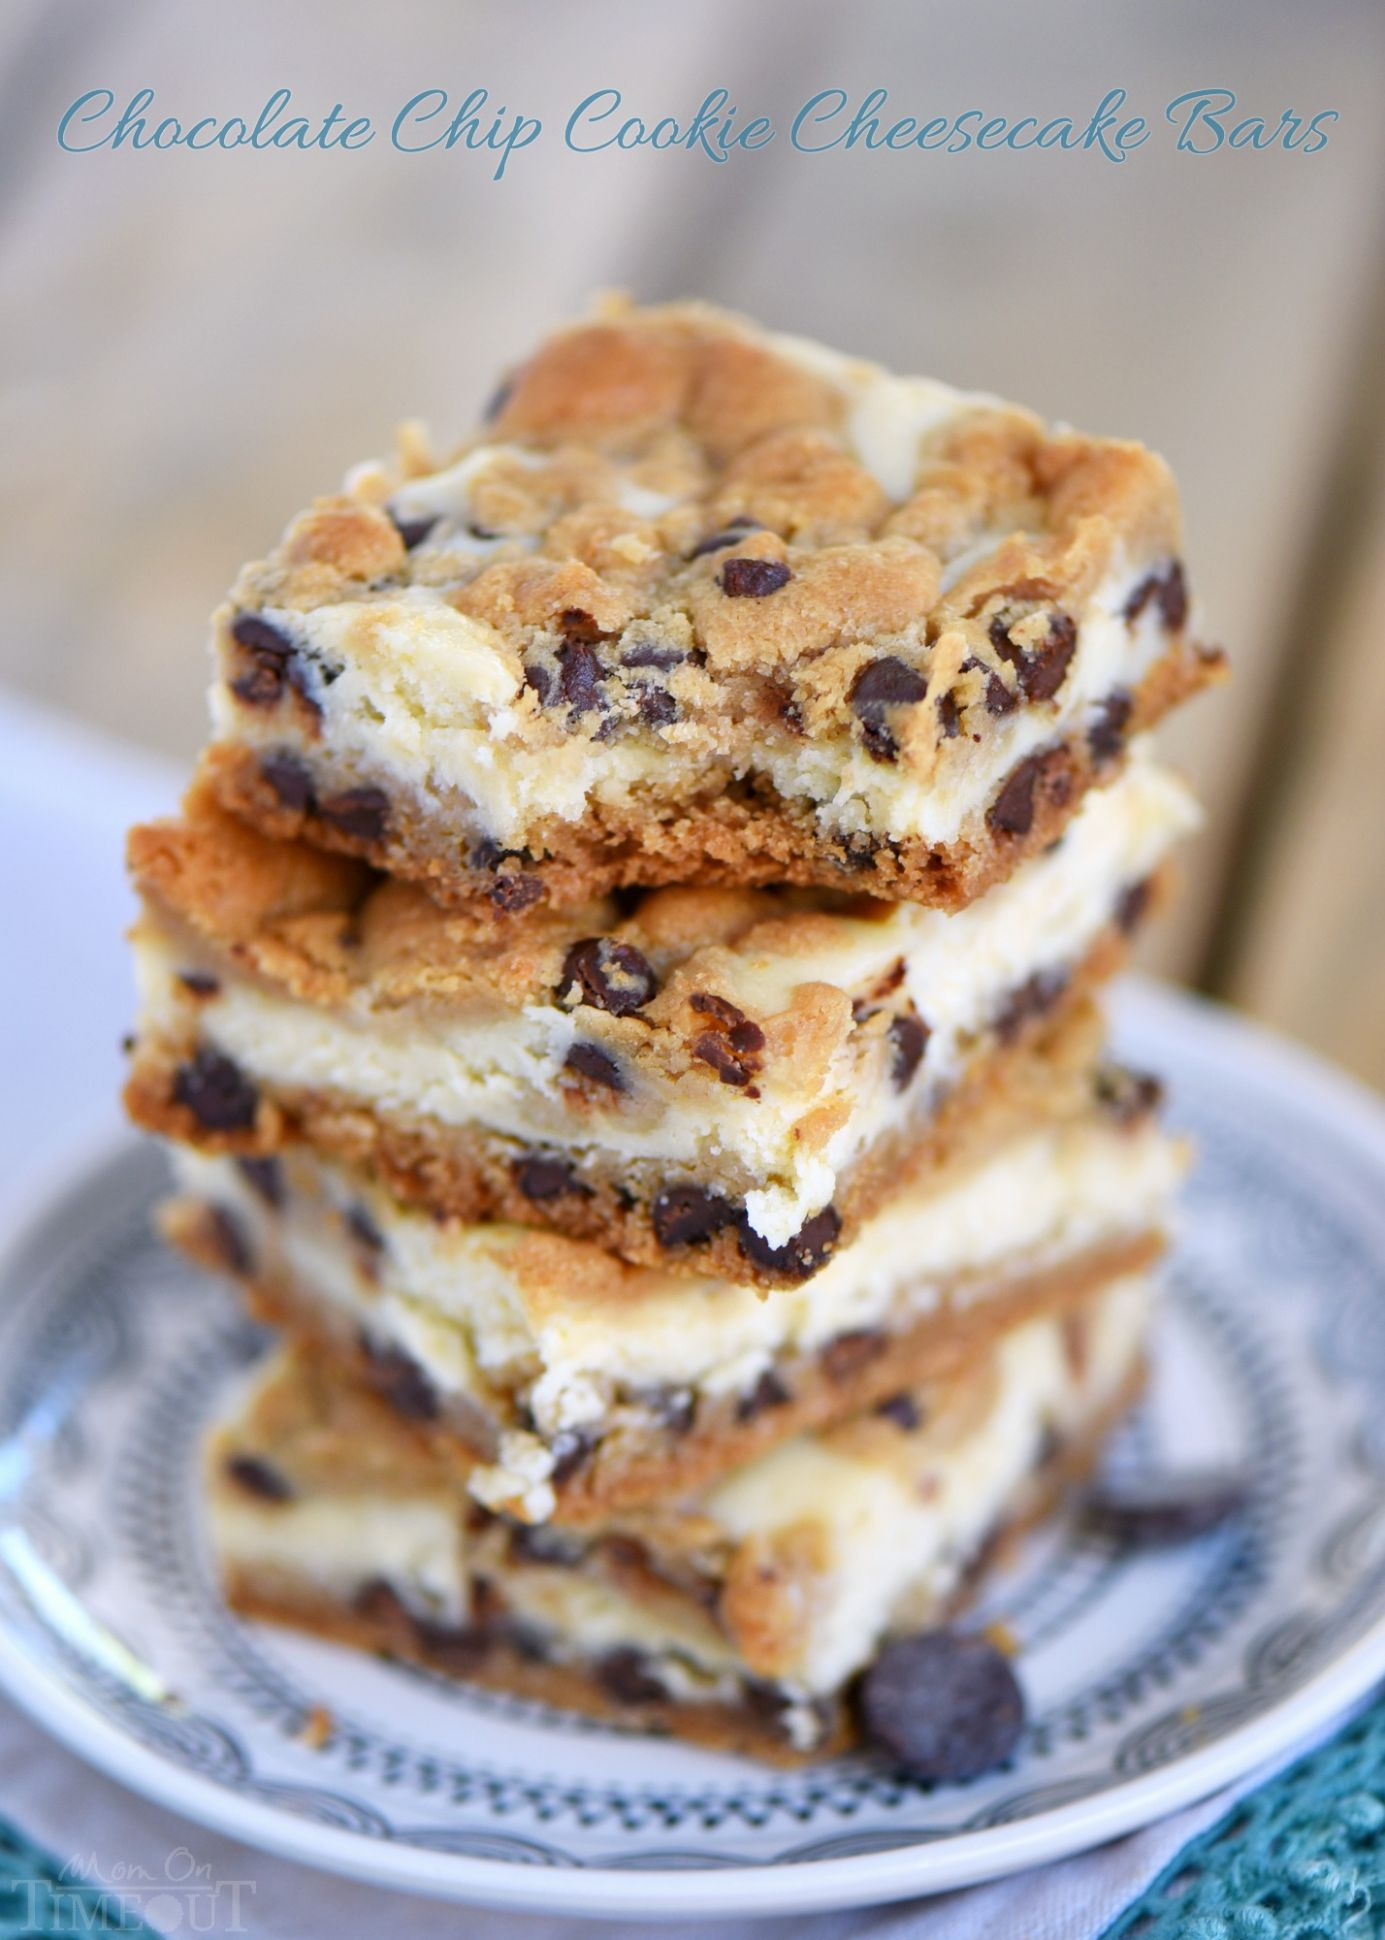 Chocolate Chip Cookie Cheesecake Bars - Dessert Recipes Baking